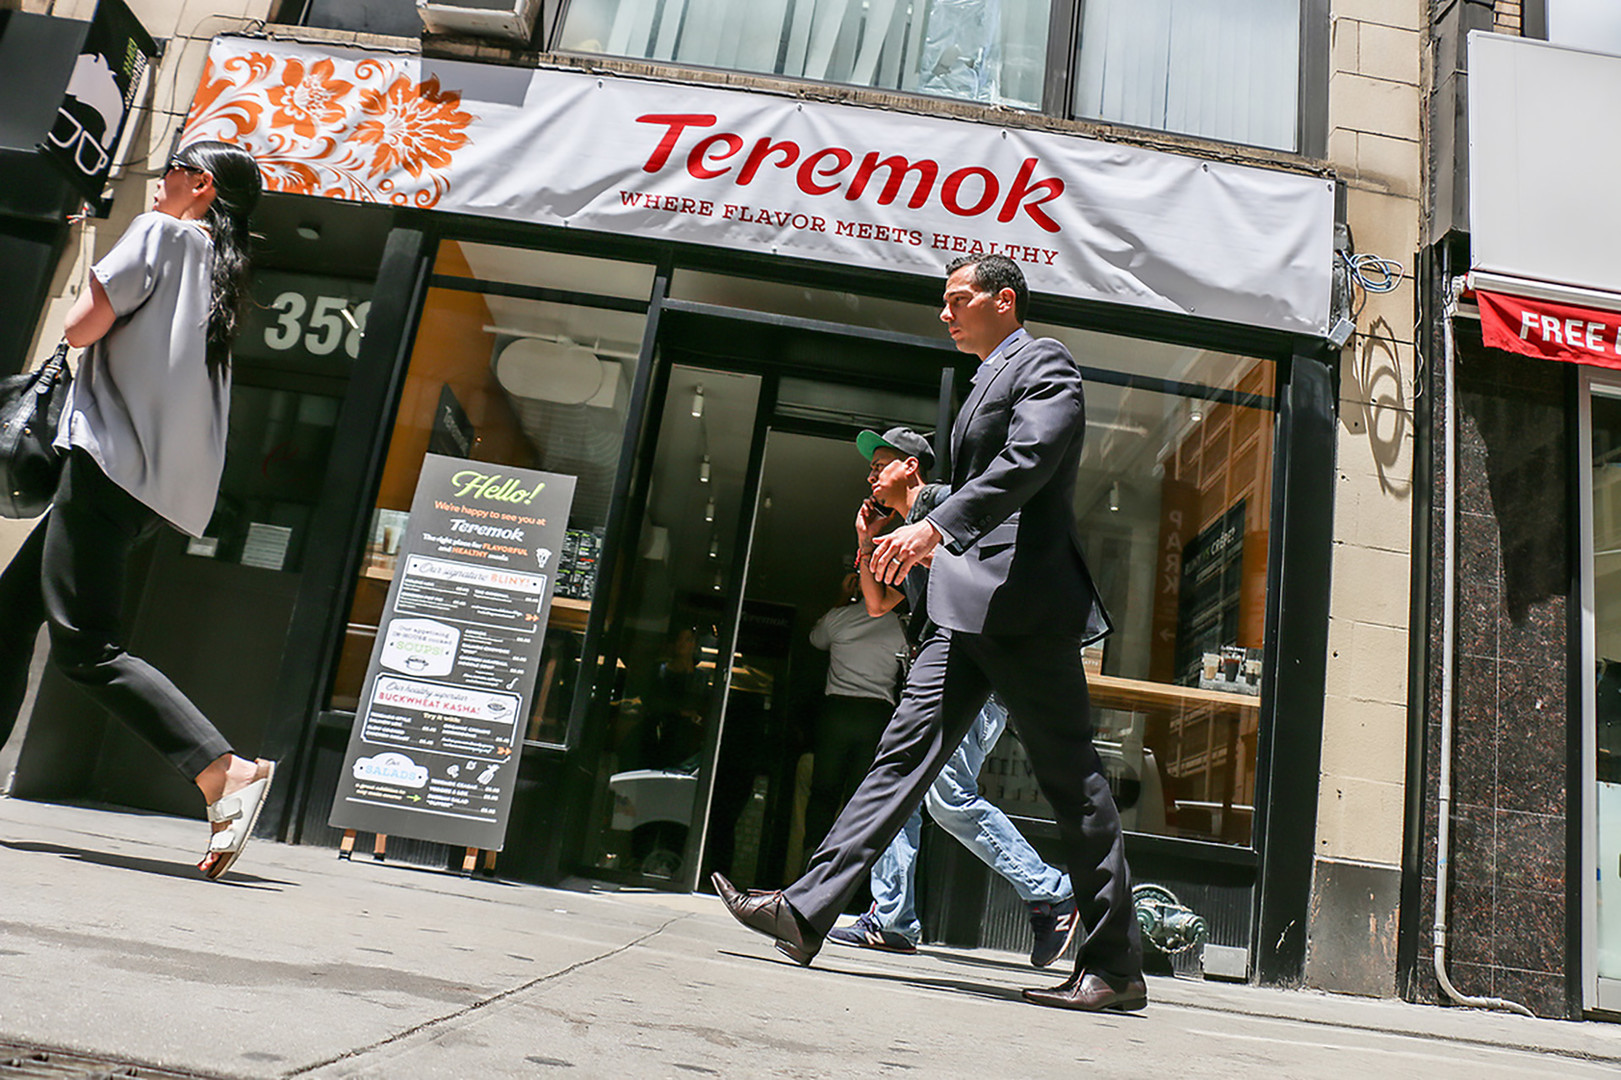 Russian fast casual chain Teremok in New York.